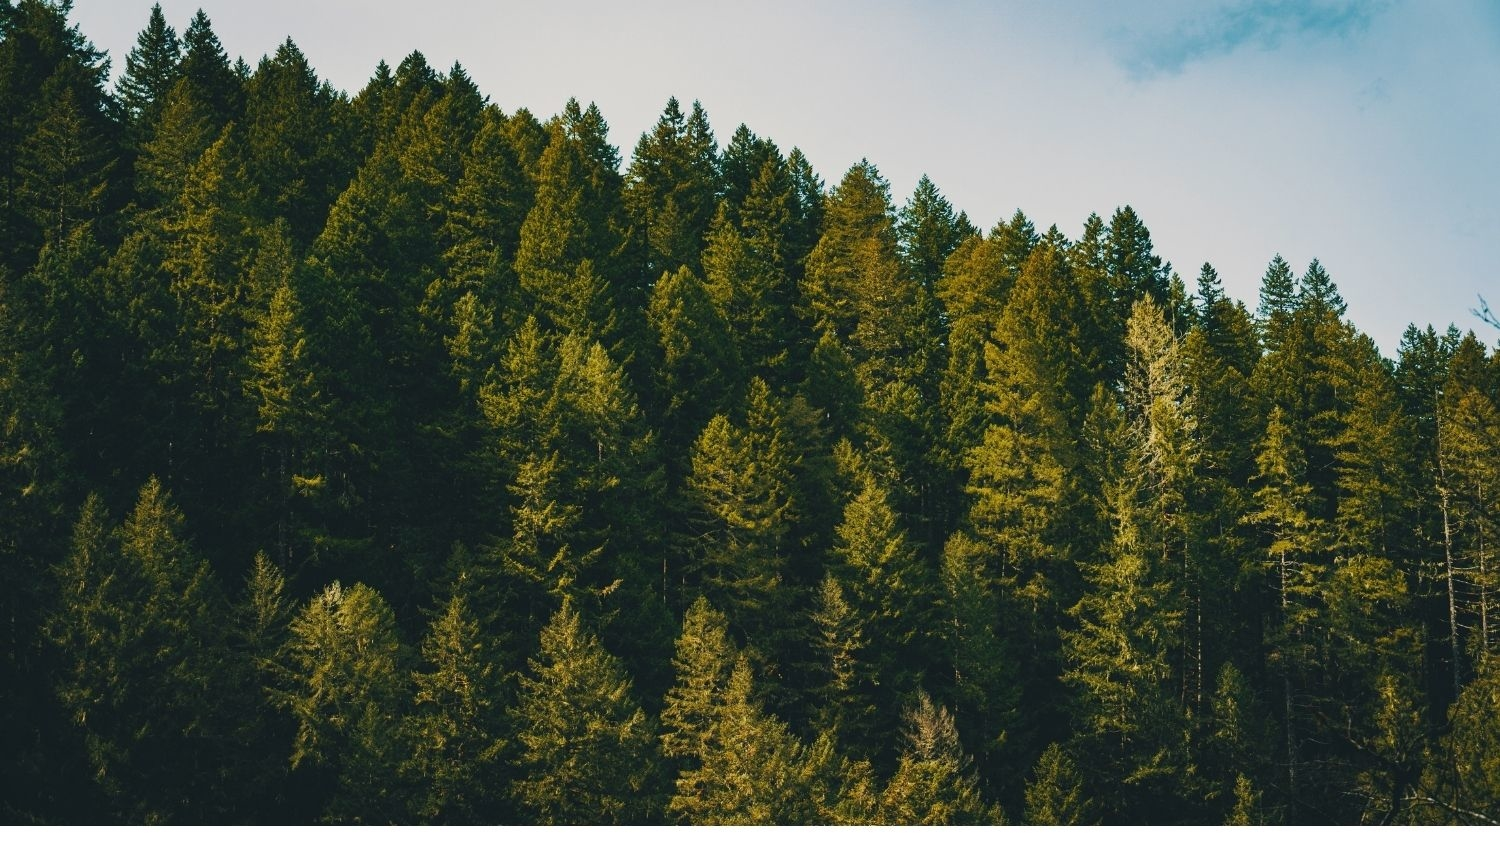 Mountain forest - Cost of Planting, Protecting Trees to Fight Climate Change Could Jump -Forestry and Environmental Resources NC State University